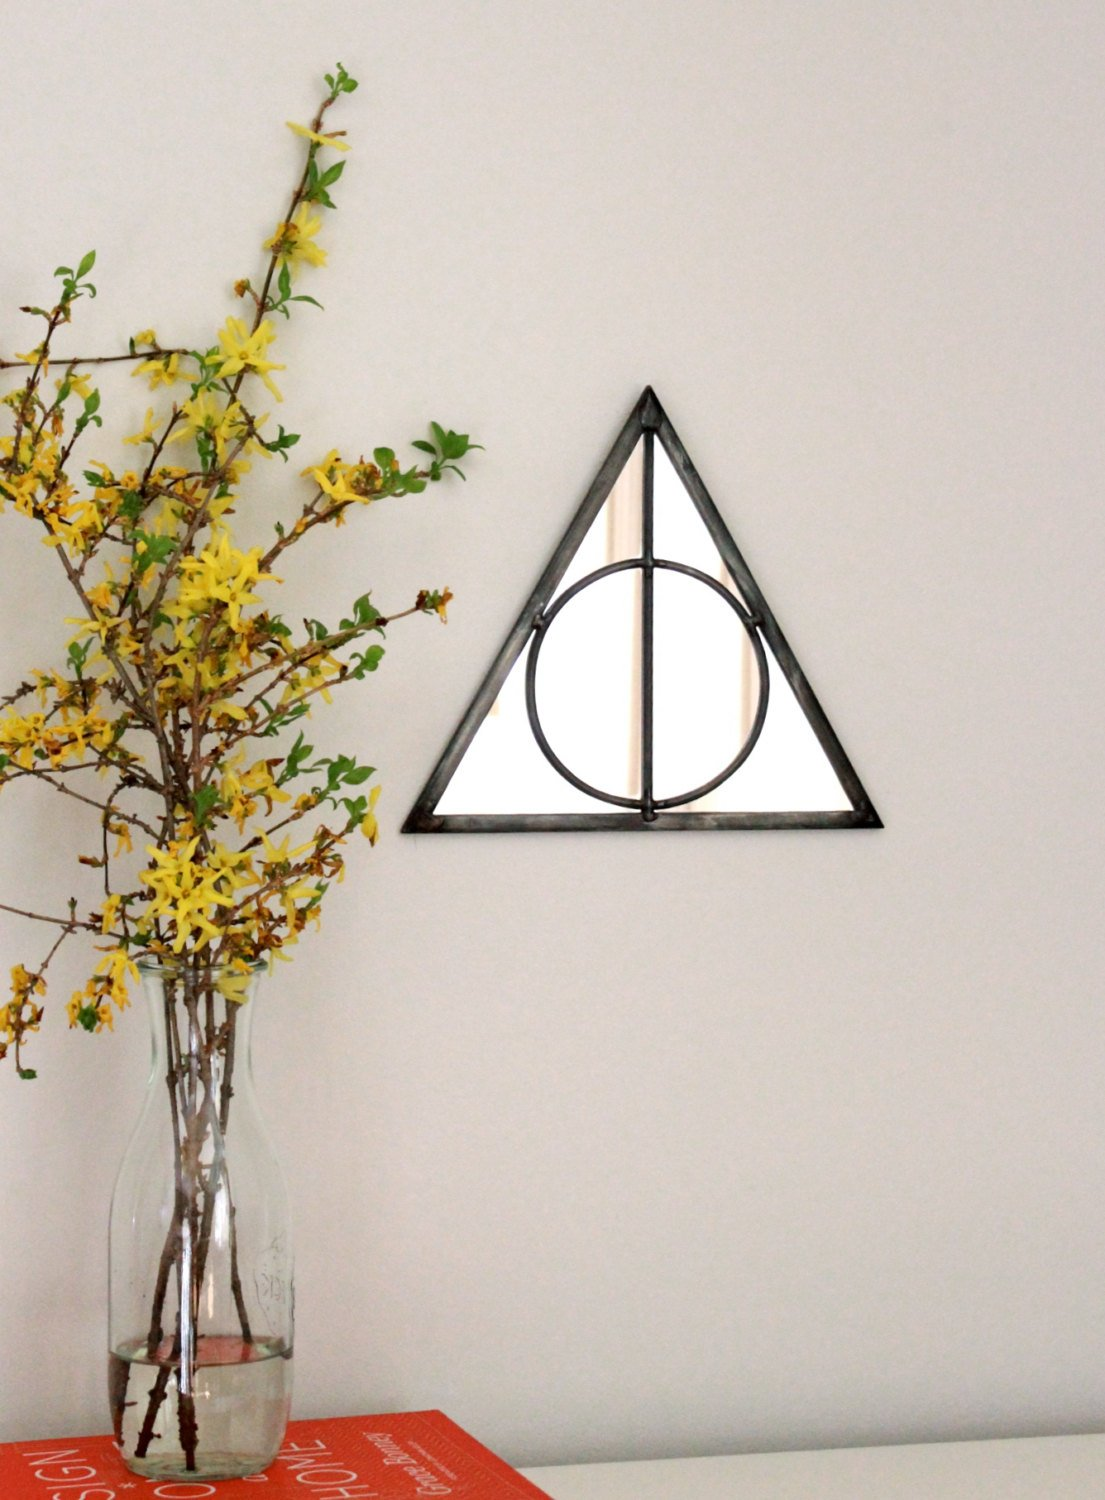 20 ideas de decoraci n del hogar inspiradas en harry potter for Espejo harry potter